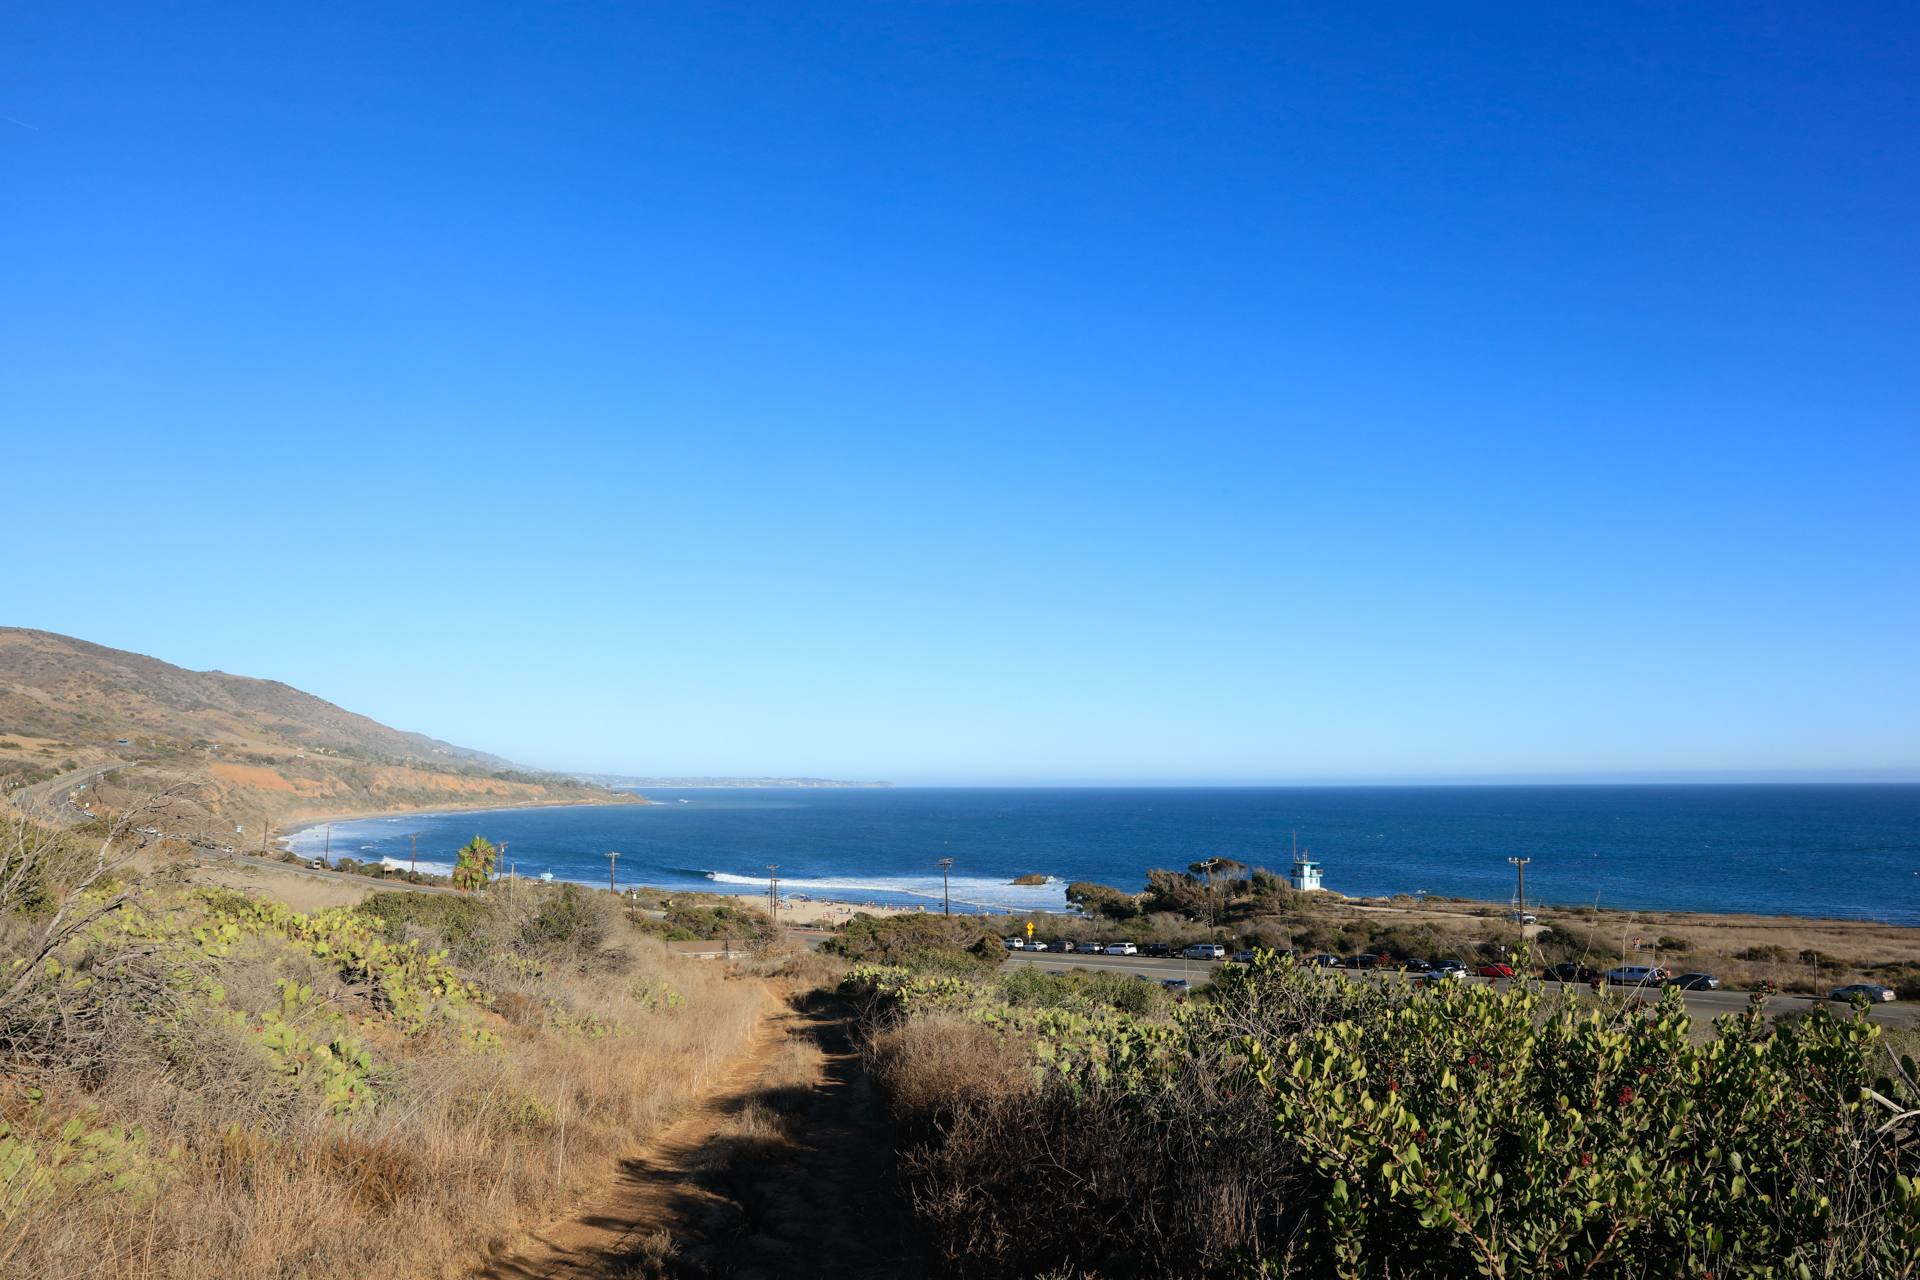 Leo Carrillo State Park in Malibu